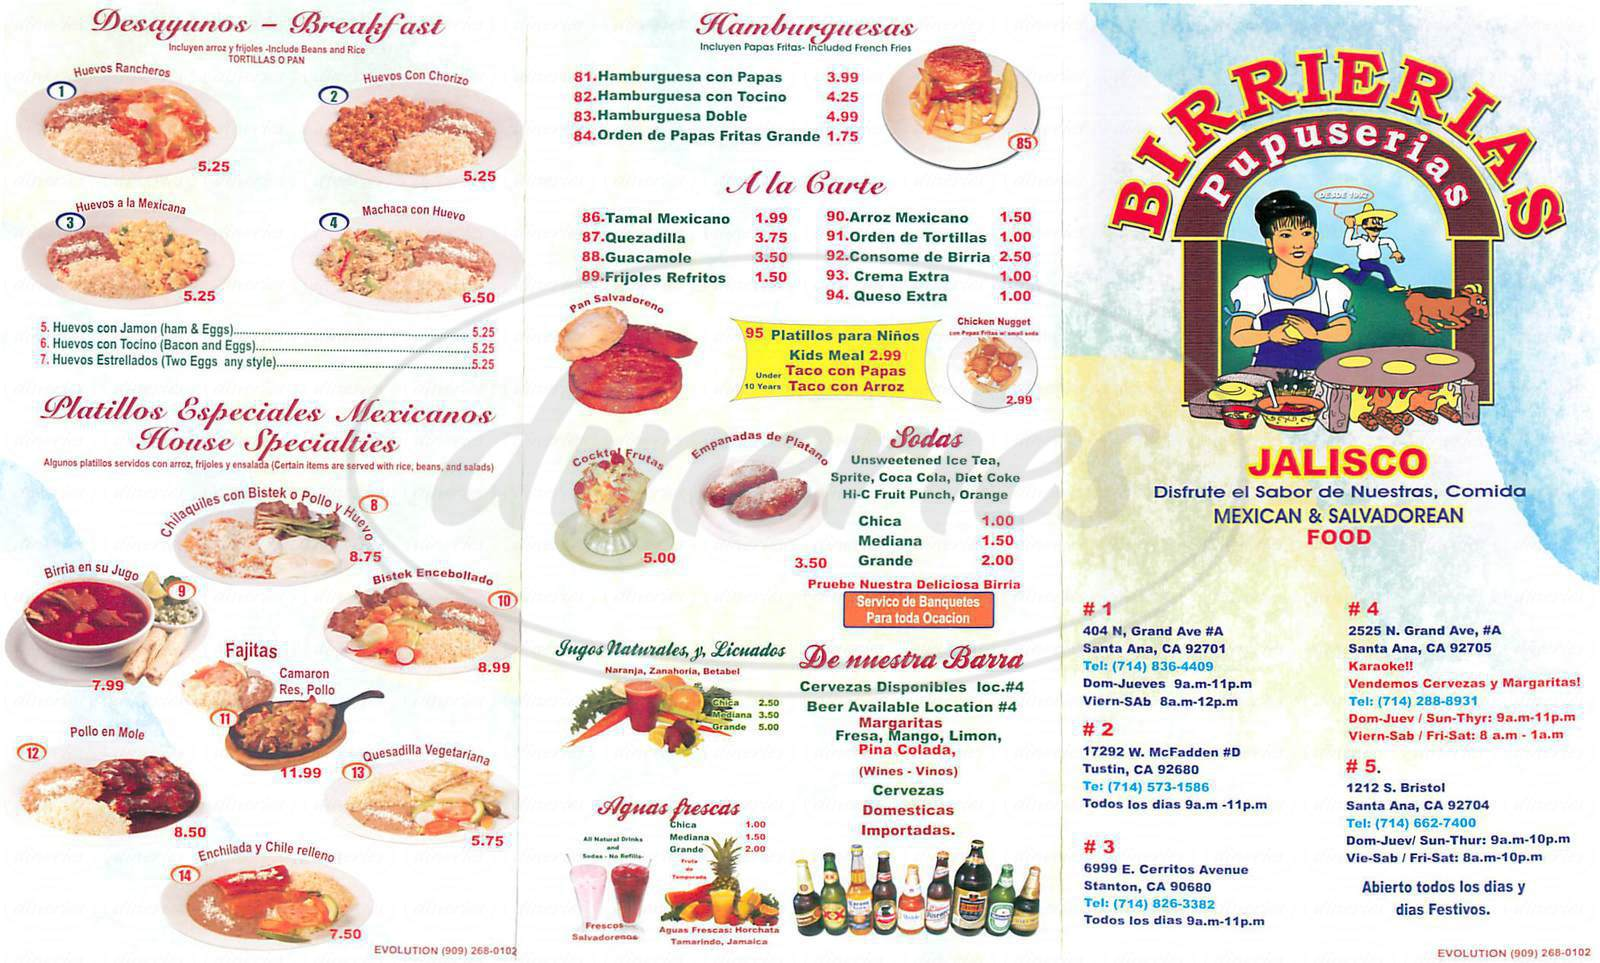 menu for Birrierias Jalisco